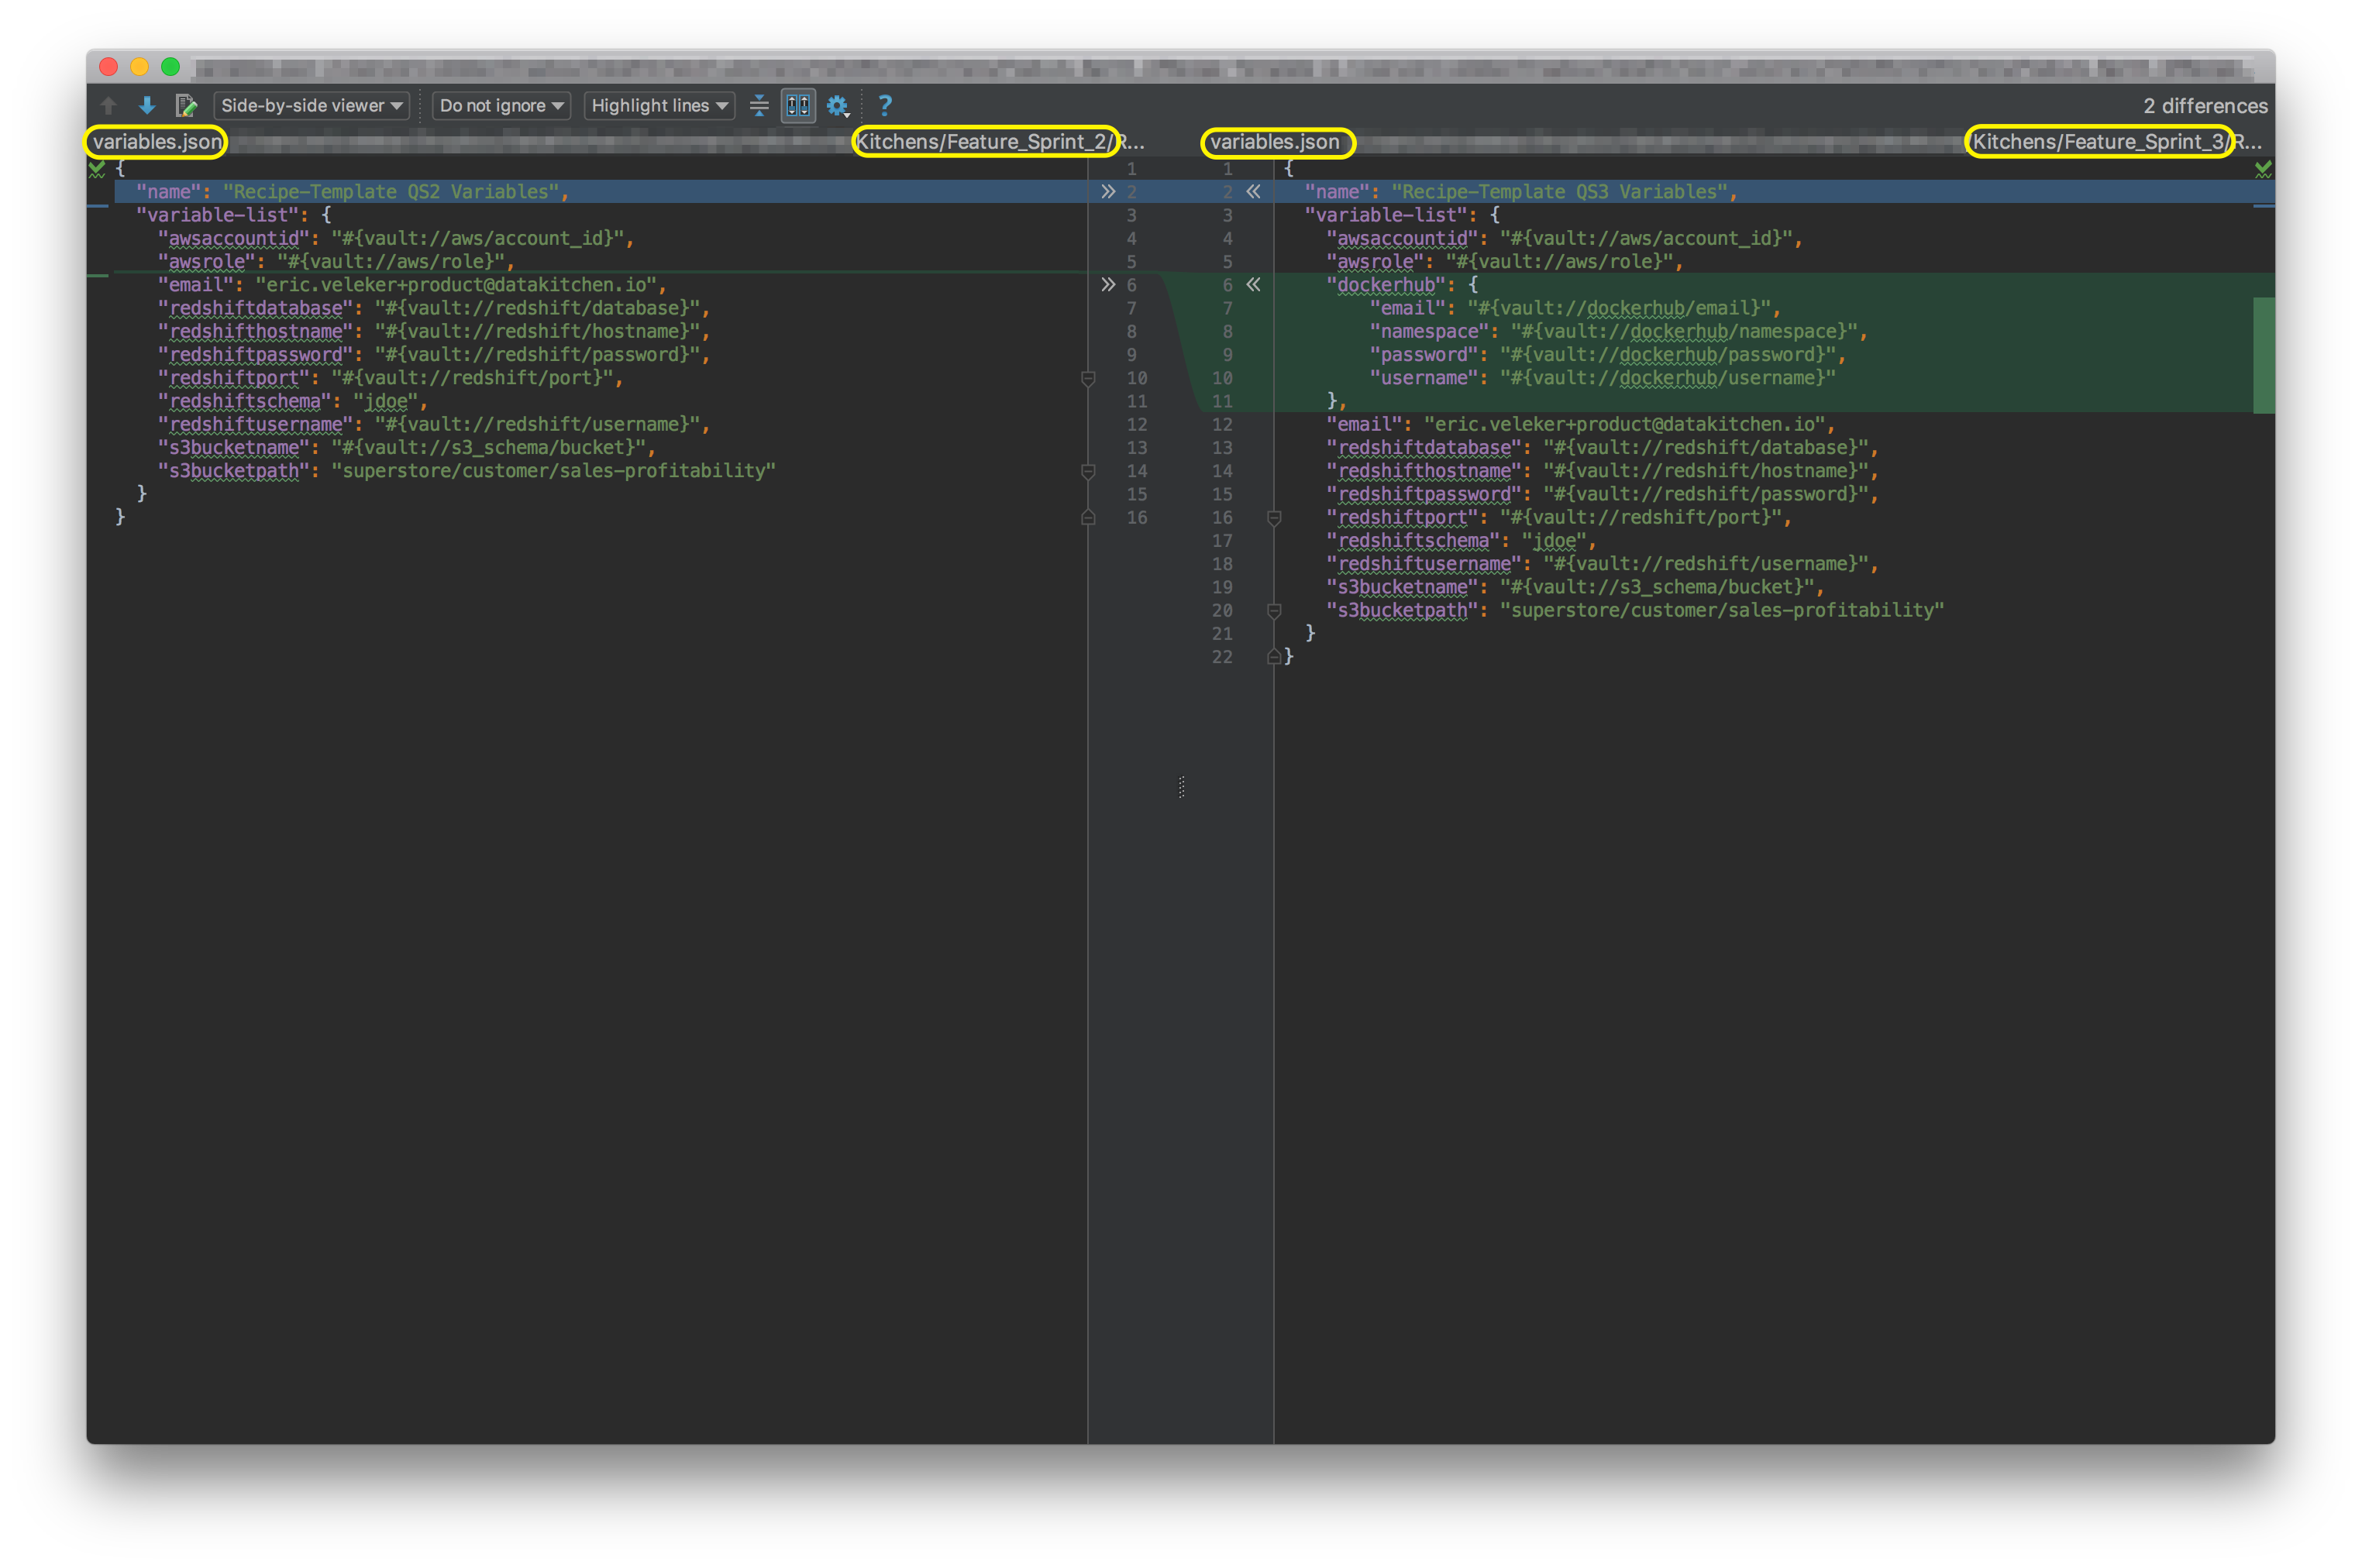 Comparison of **variables.json** from **CLI Quickstart2** and **CLI Quickstart3**.